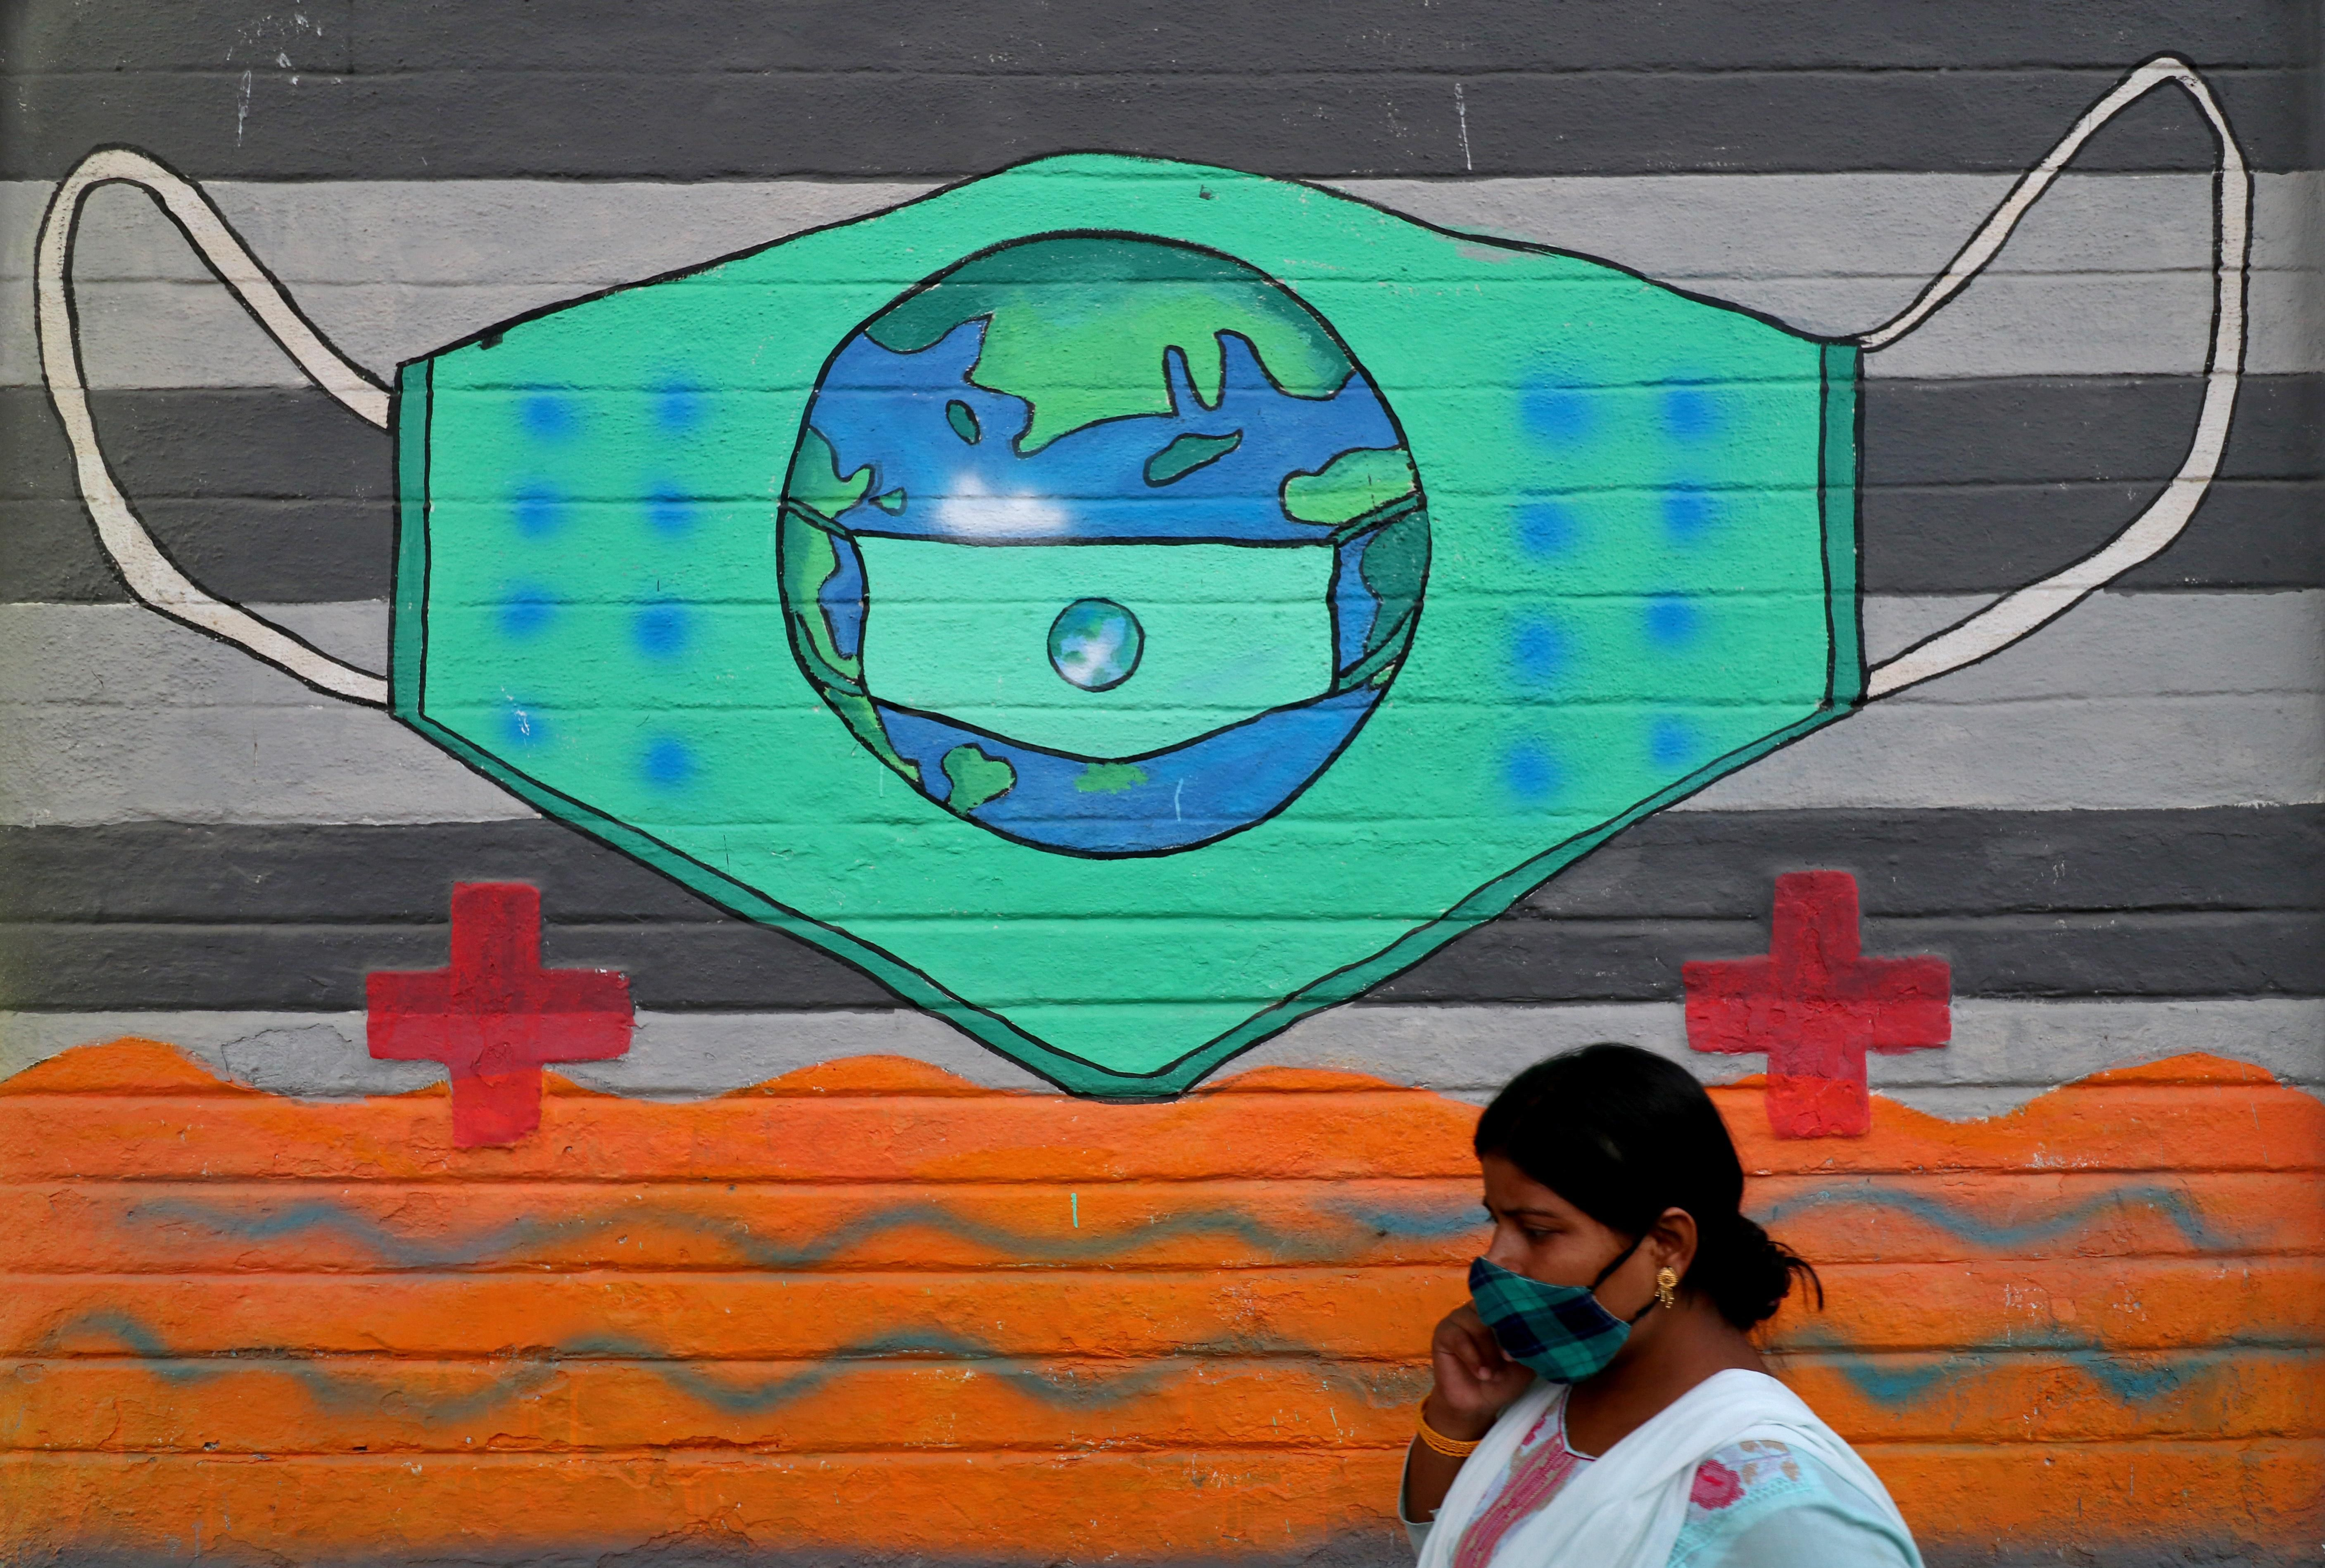 A woman wearing a protective face mask walks past a graffiti on a wall, amidst the spread of the coronavirus disease (COVID-19), in Mumbai, India, March 25, 2021.